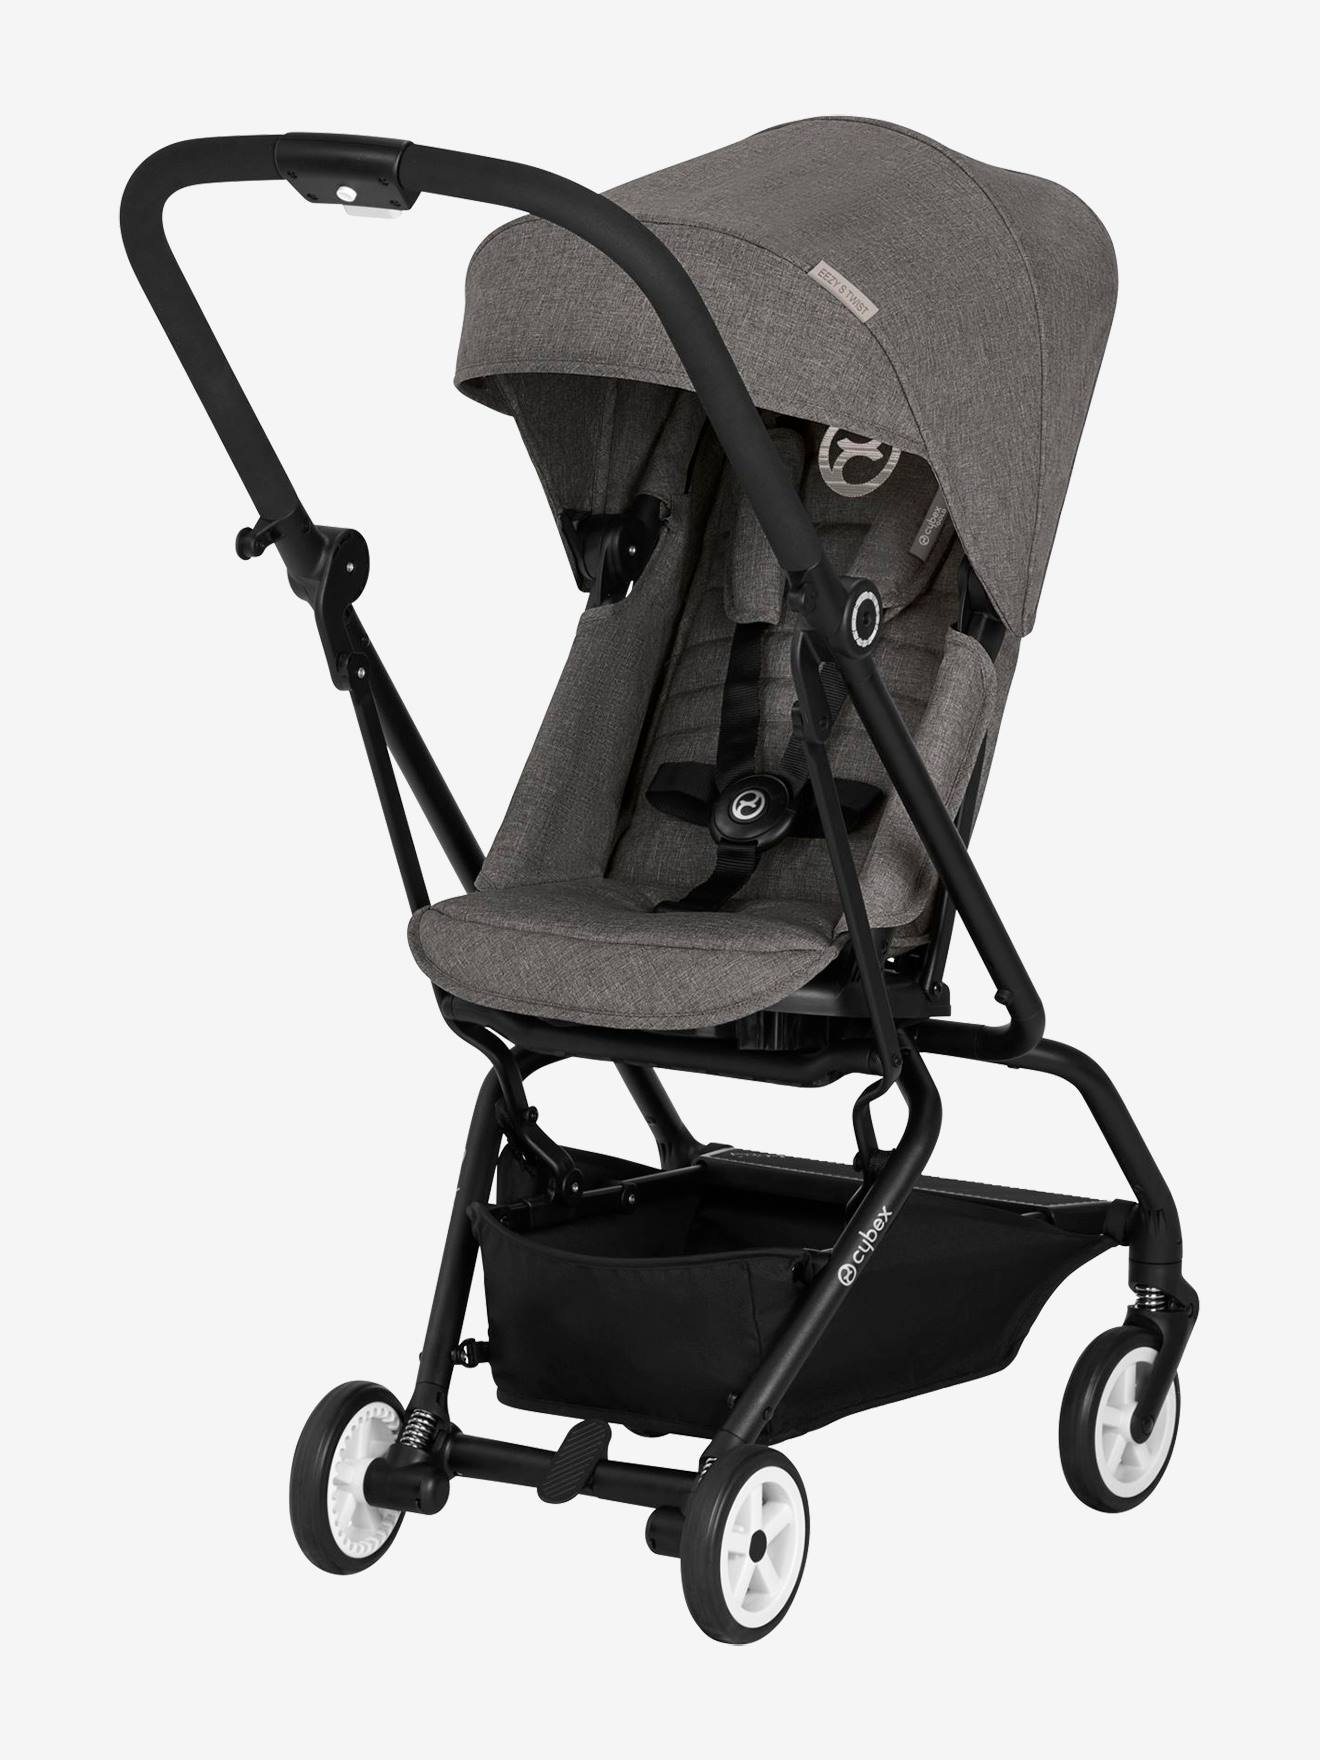 Poussette réversible CYBEX Eezy S Twist gris clair (manhattan grey